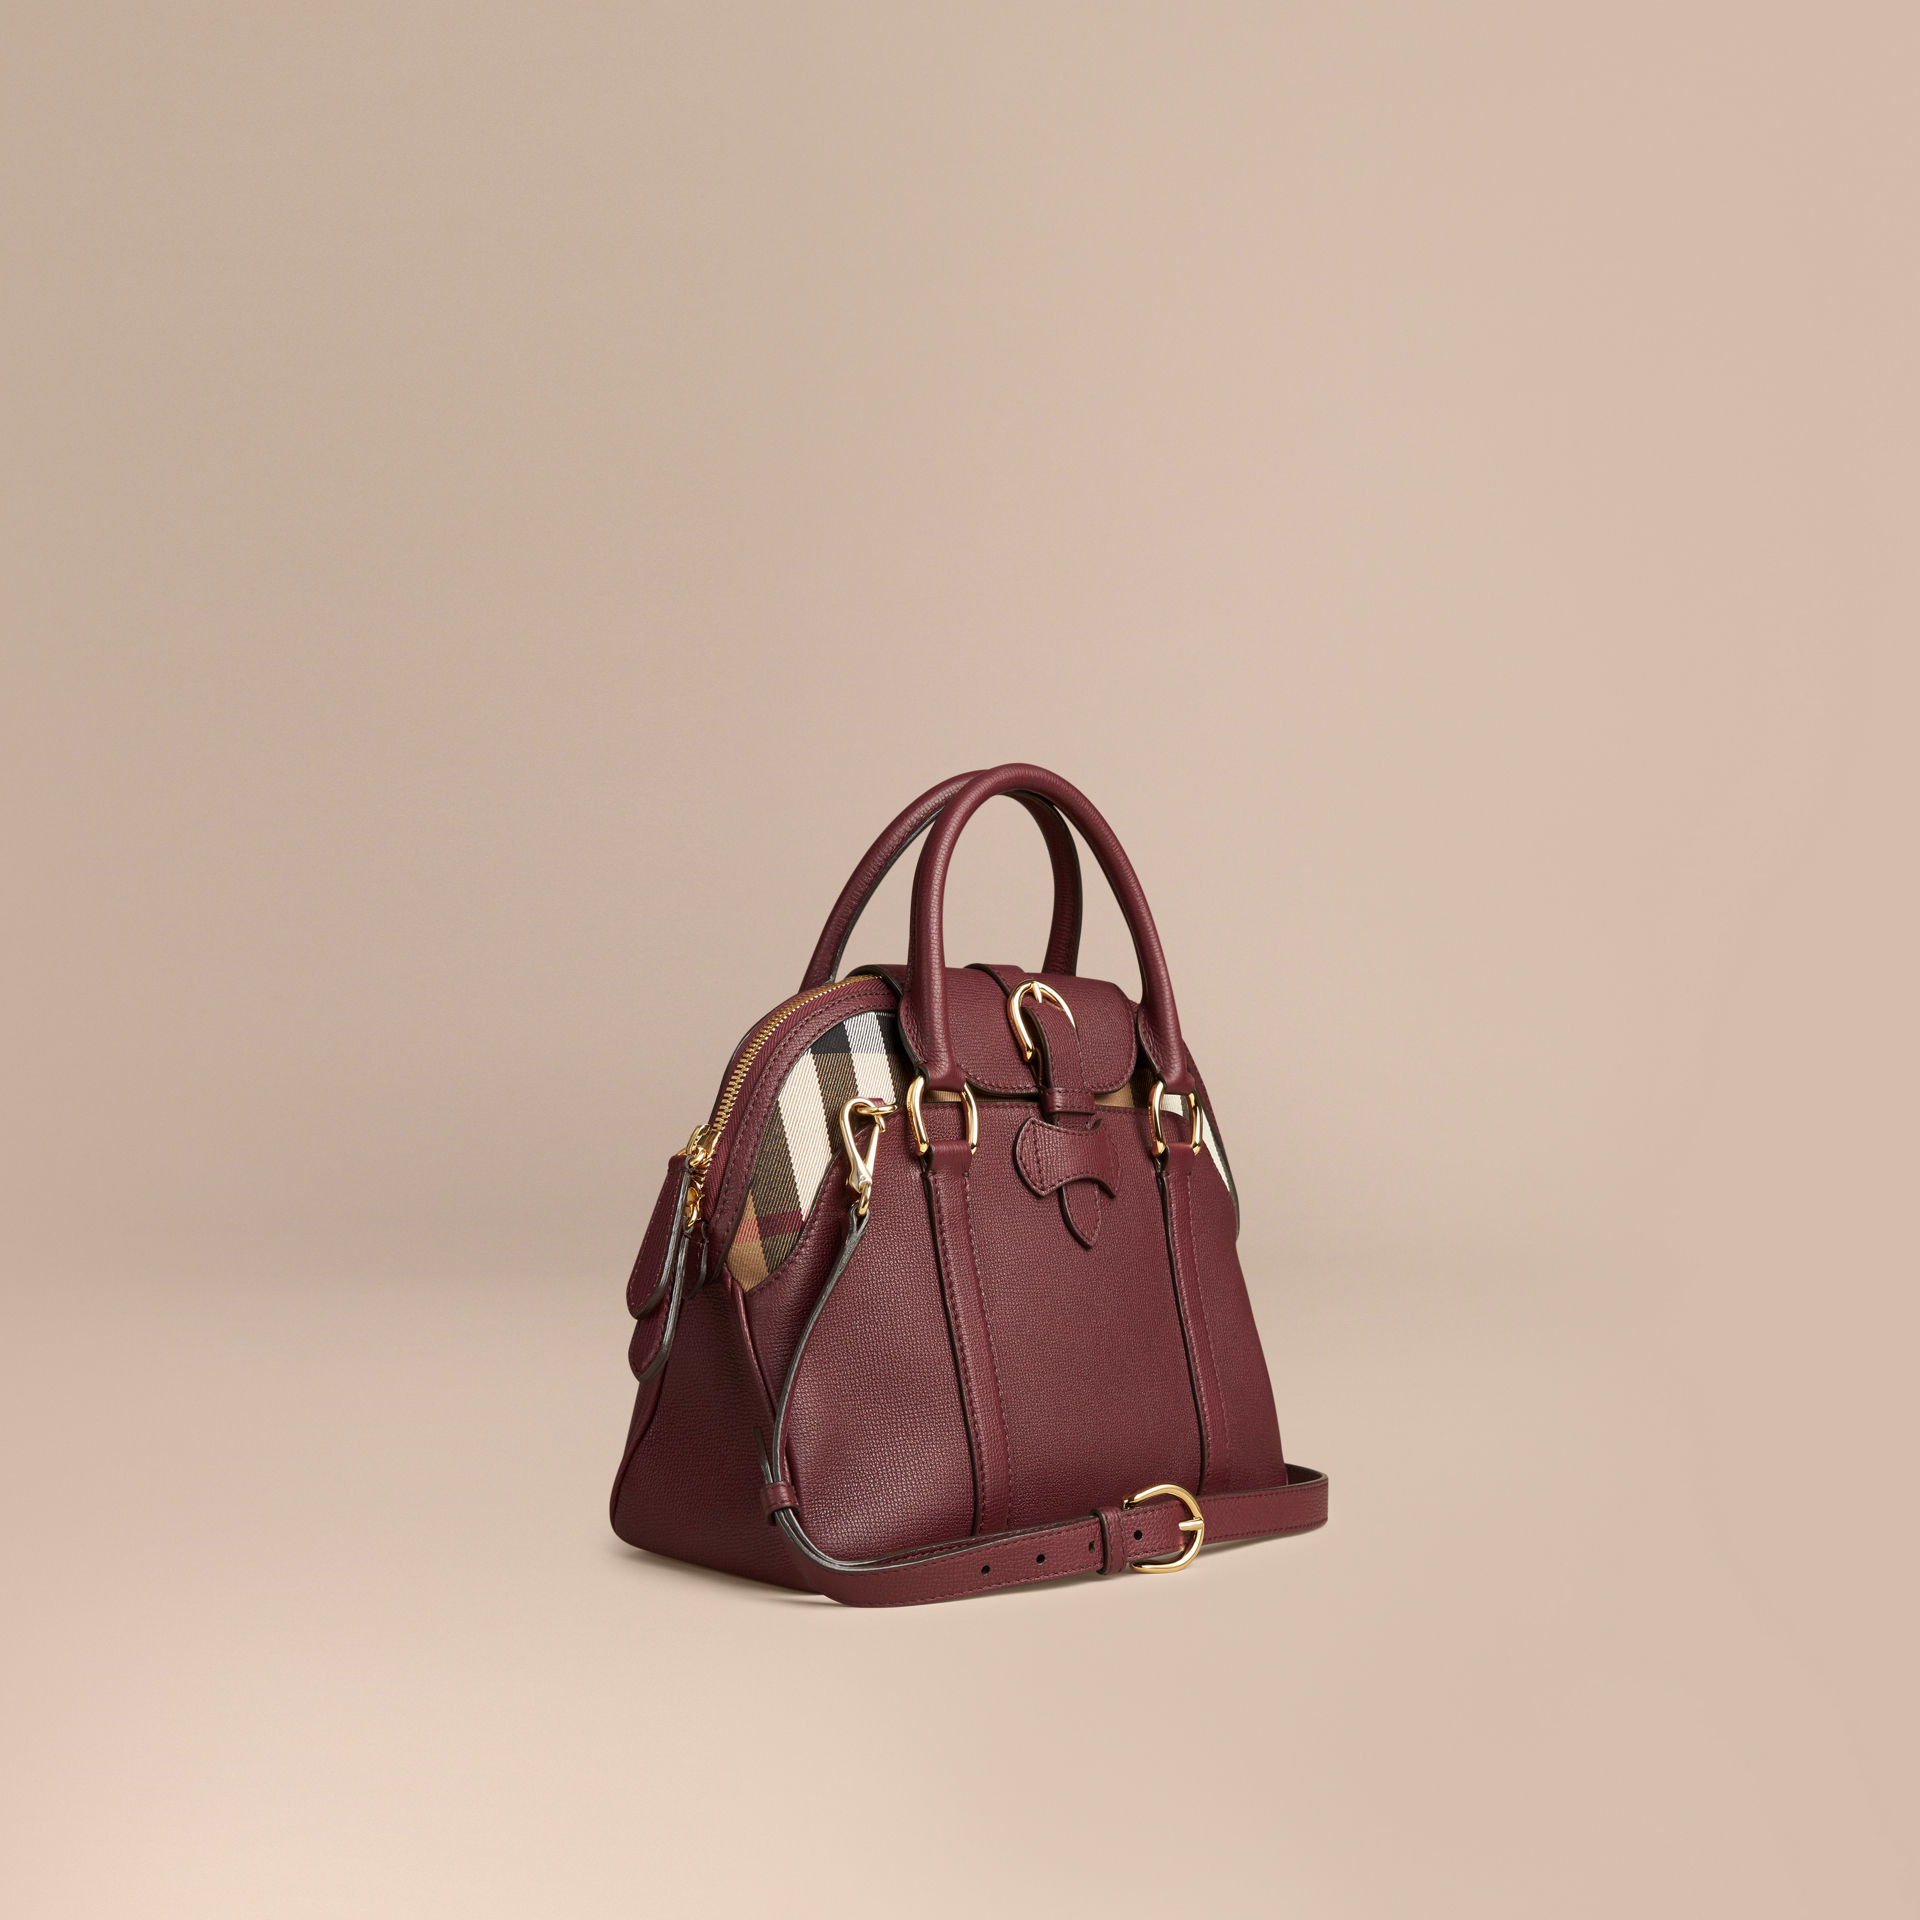 5875011d4cbf Burberry Medium Leather And House Check Bowling Bag Mahogany Red in ...